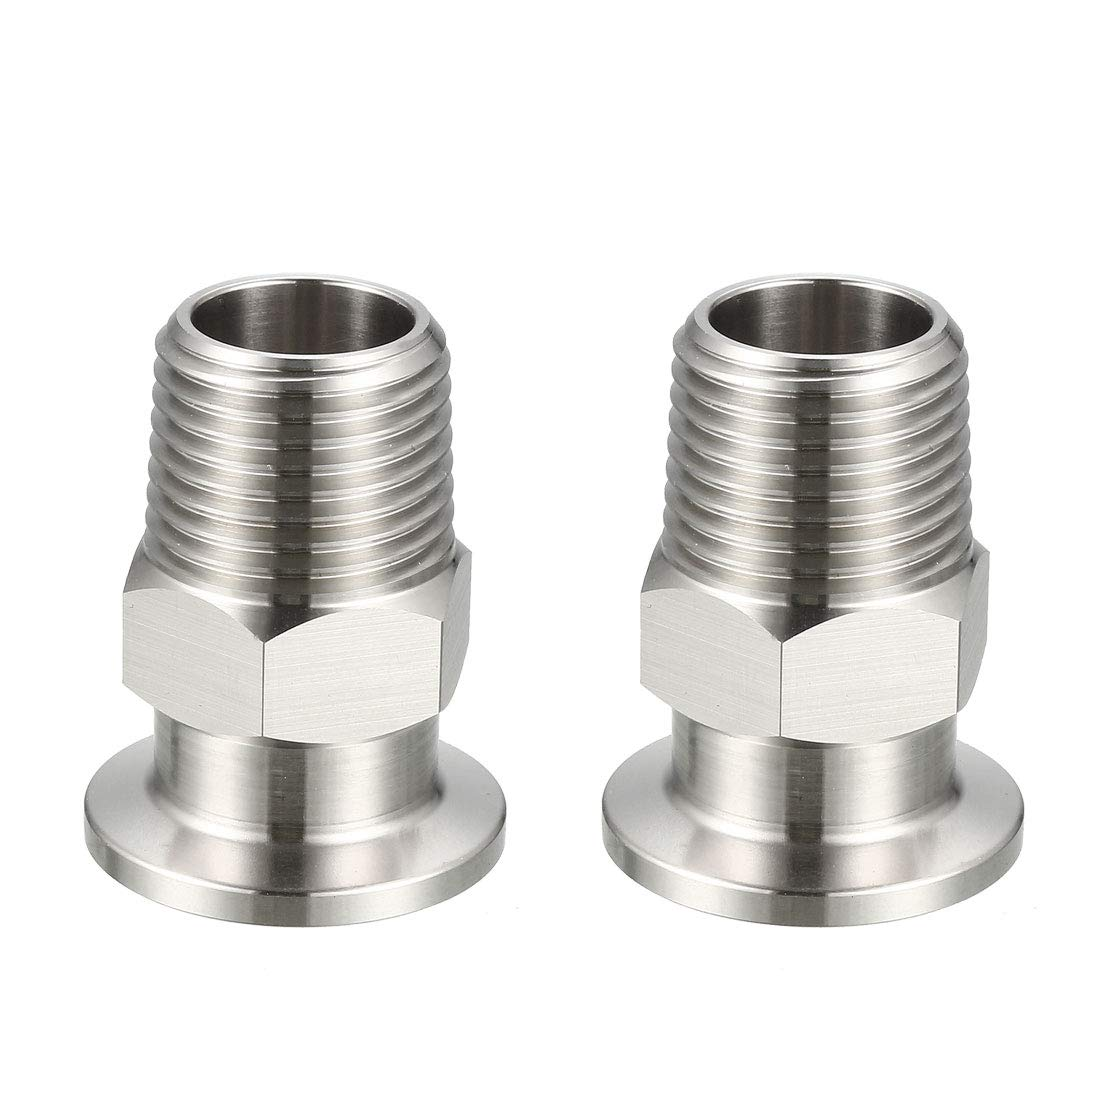 uxcell Sanitary Pipe Fitting KF16 Male Threaded 1/2 PT to Tri Clamp OD 30mm Ferrule 2 Pcs